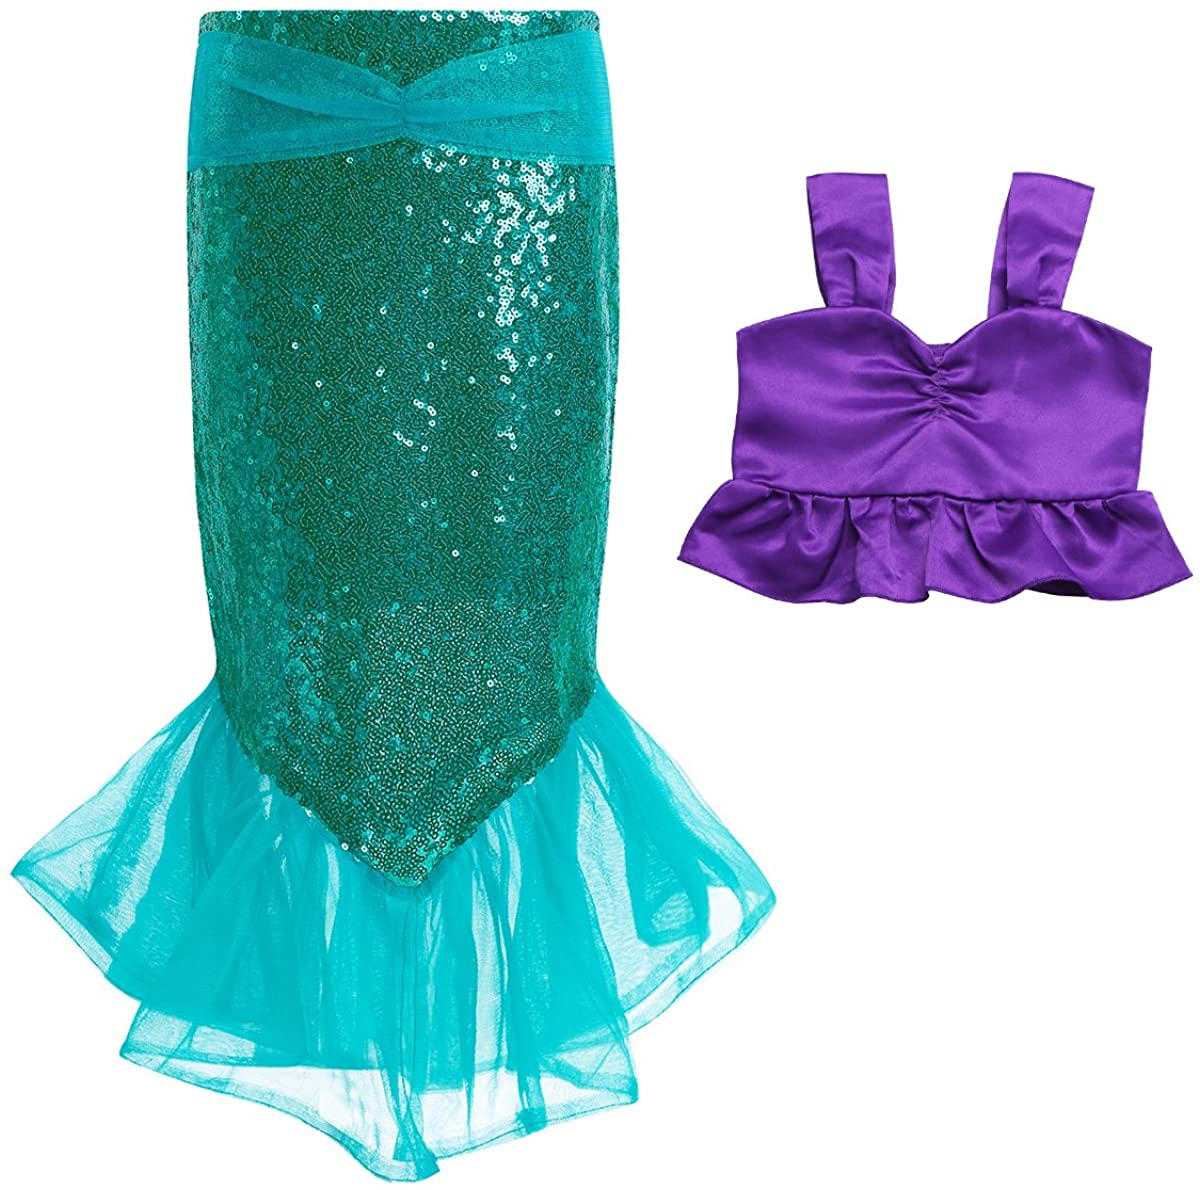 Oyolan Kids Girls 2PCS Shiny Sequins Mermaid Costume Top with Fishtail Skirt Outfit Set